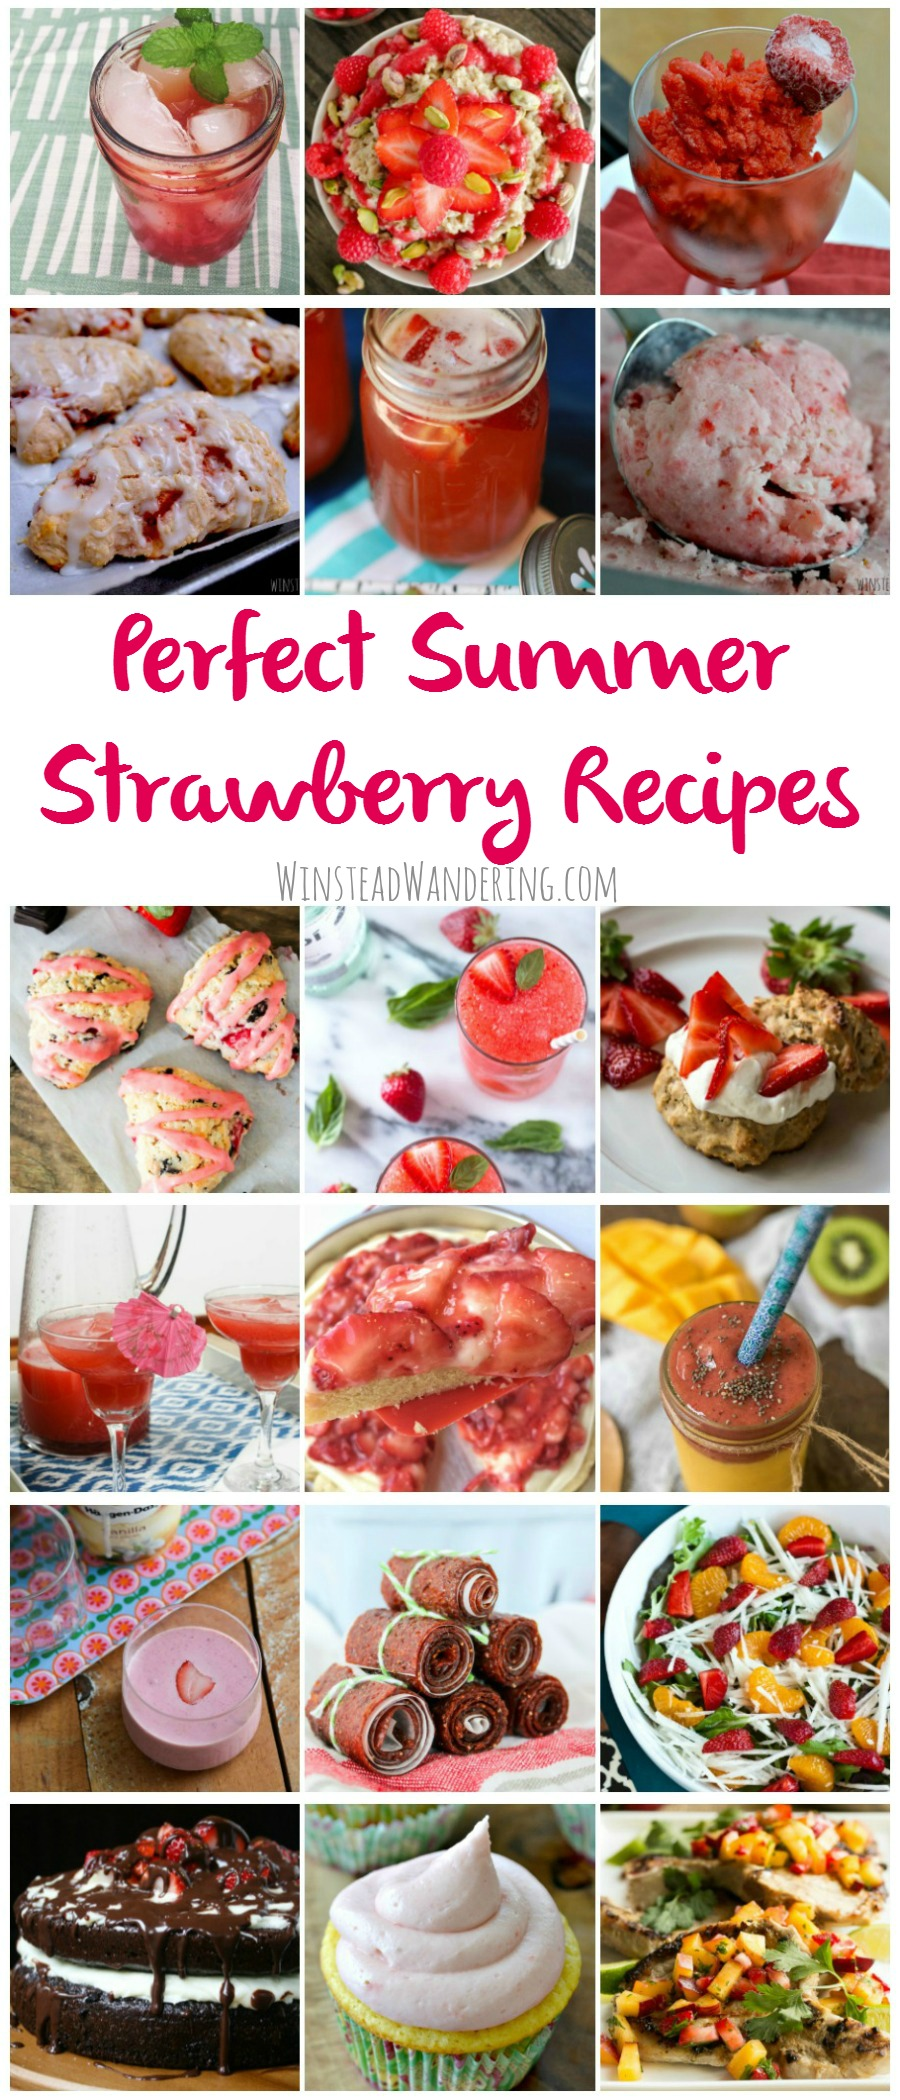 Forget Christmas- everyone knows strawberry season is the most wonderful time of year. Here are 33 perfect summer strawberry recipes to help you celebrate.